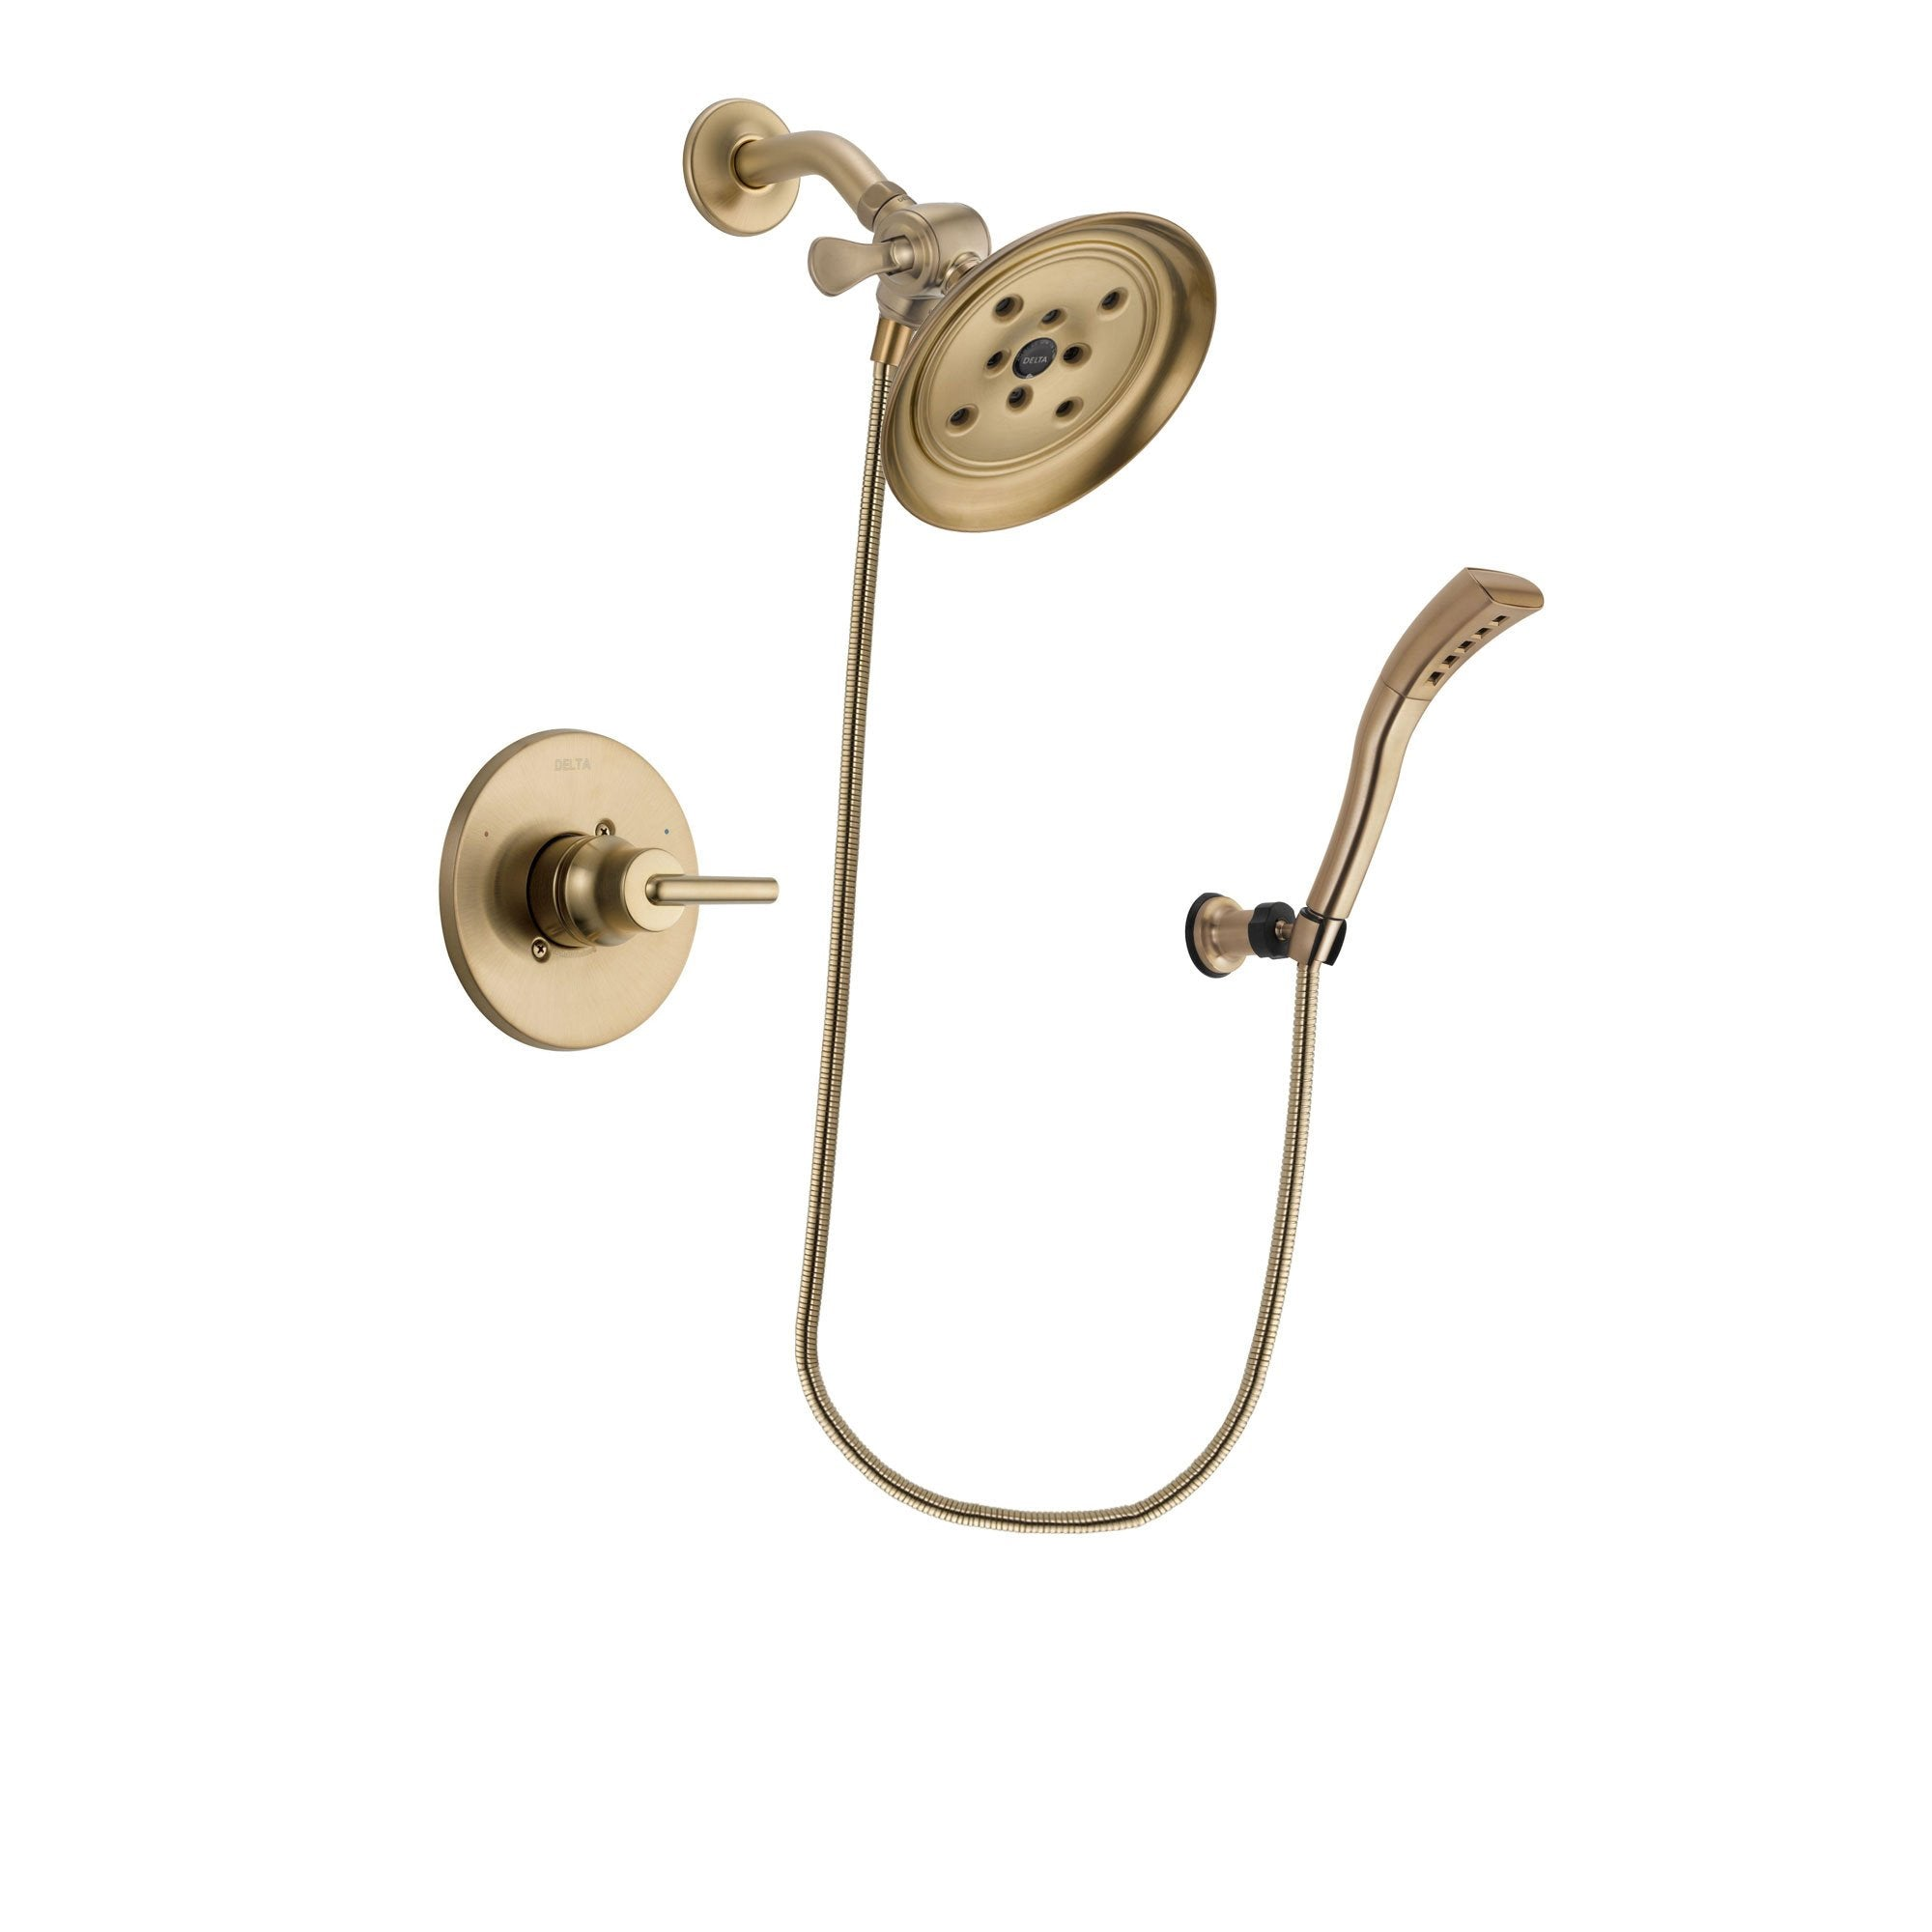 Delta Trinsic Champagne Bronze Finish Shower Faucet System Package with Large Rain Shower Head and Modern Wall Mount Personal Handheld Shower Spray Includes Rough-in Valve DSP3692V